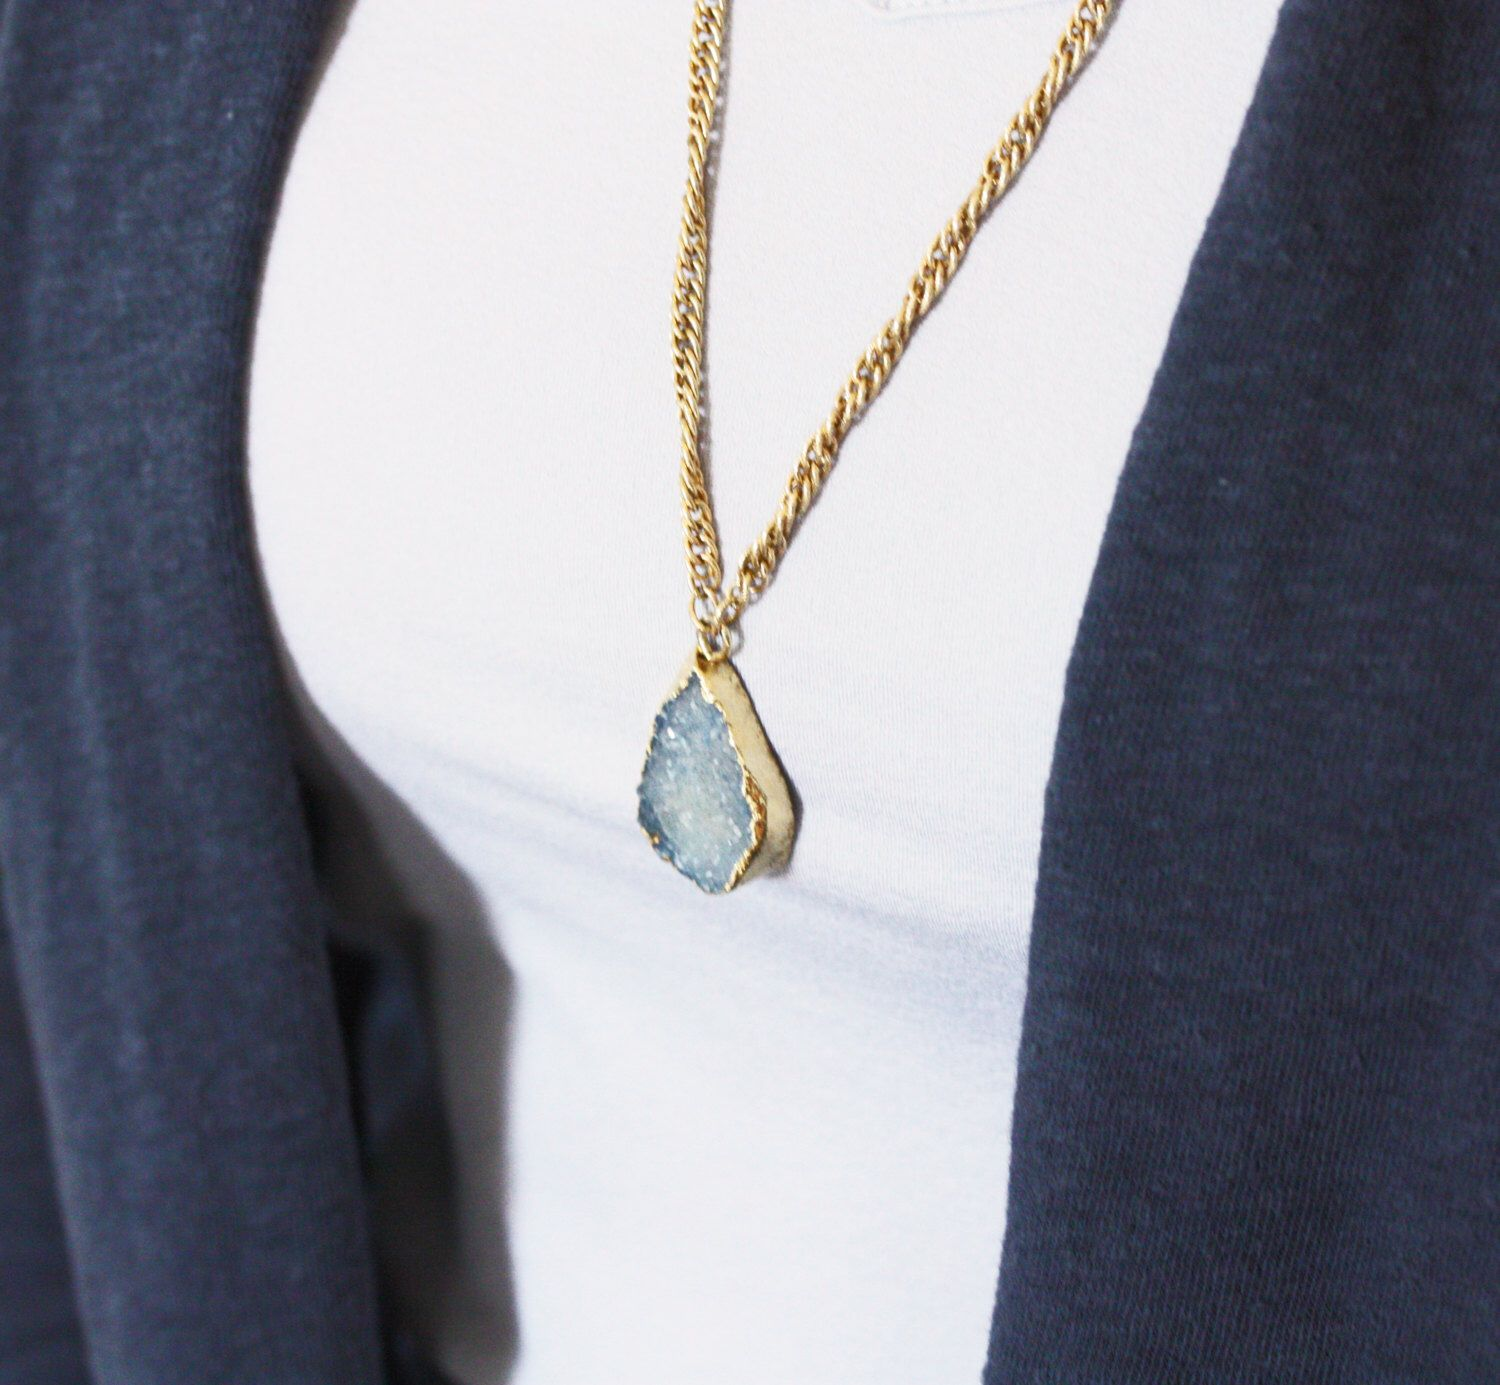 Golden blue druzy pendant necklace with upcycled vintage chain by